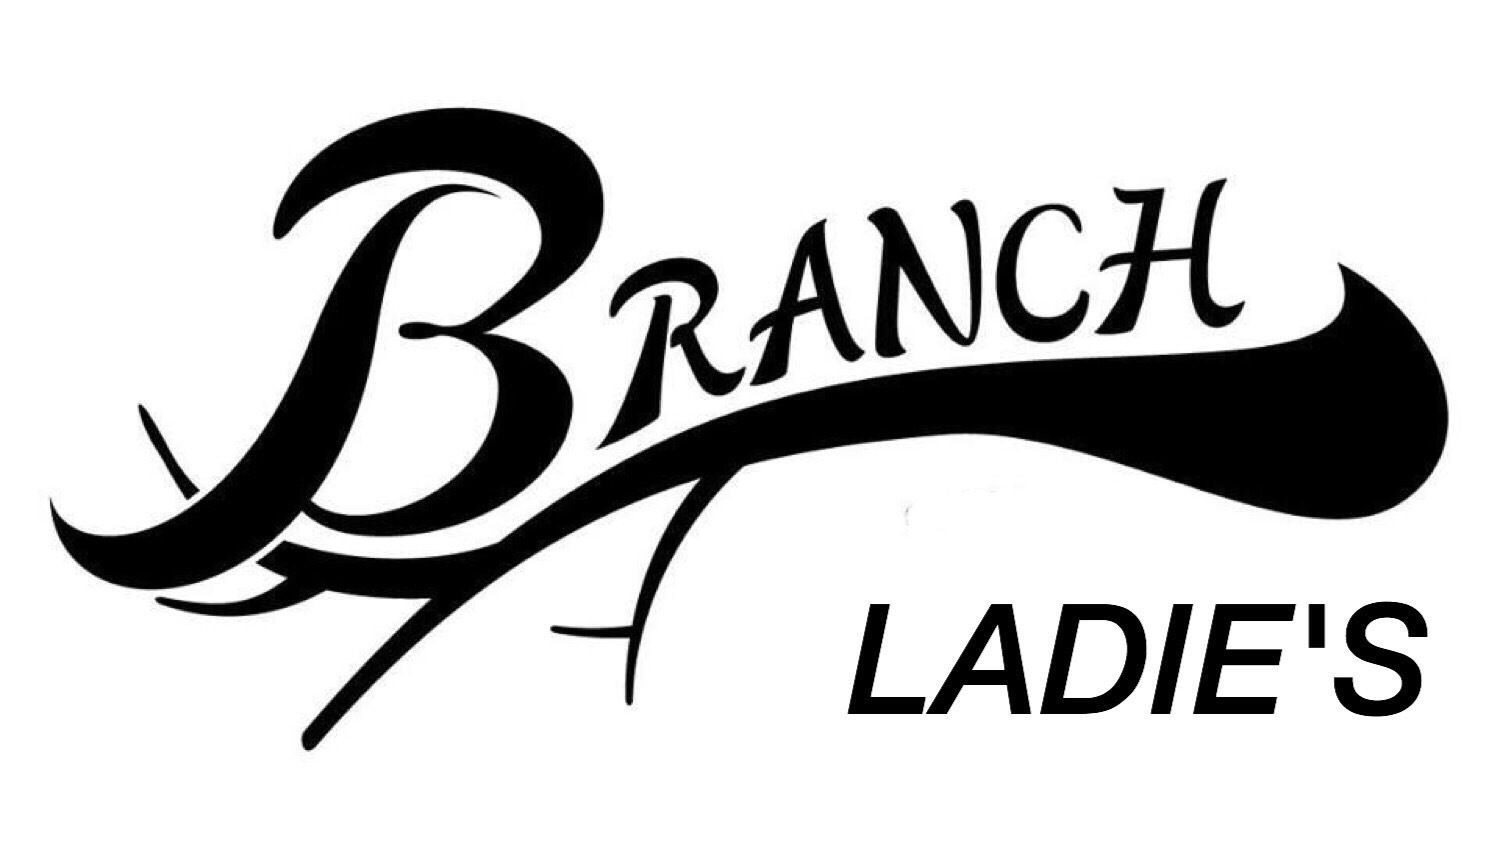 BRANCH LADIES